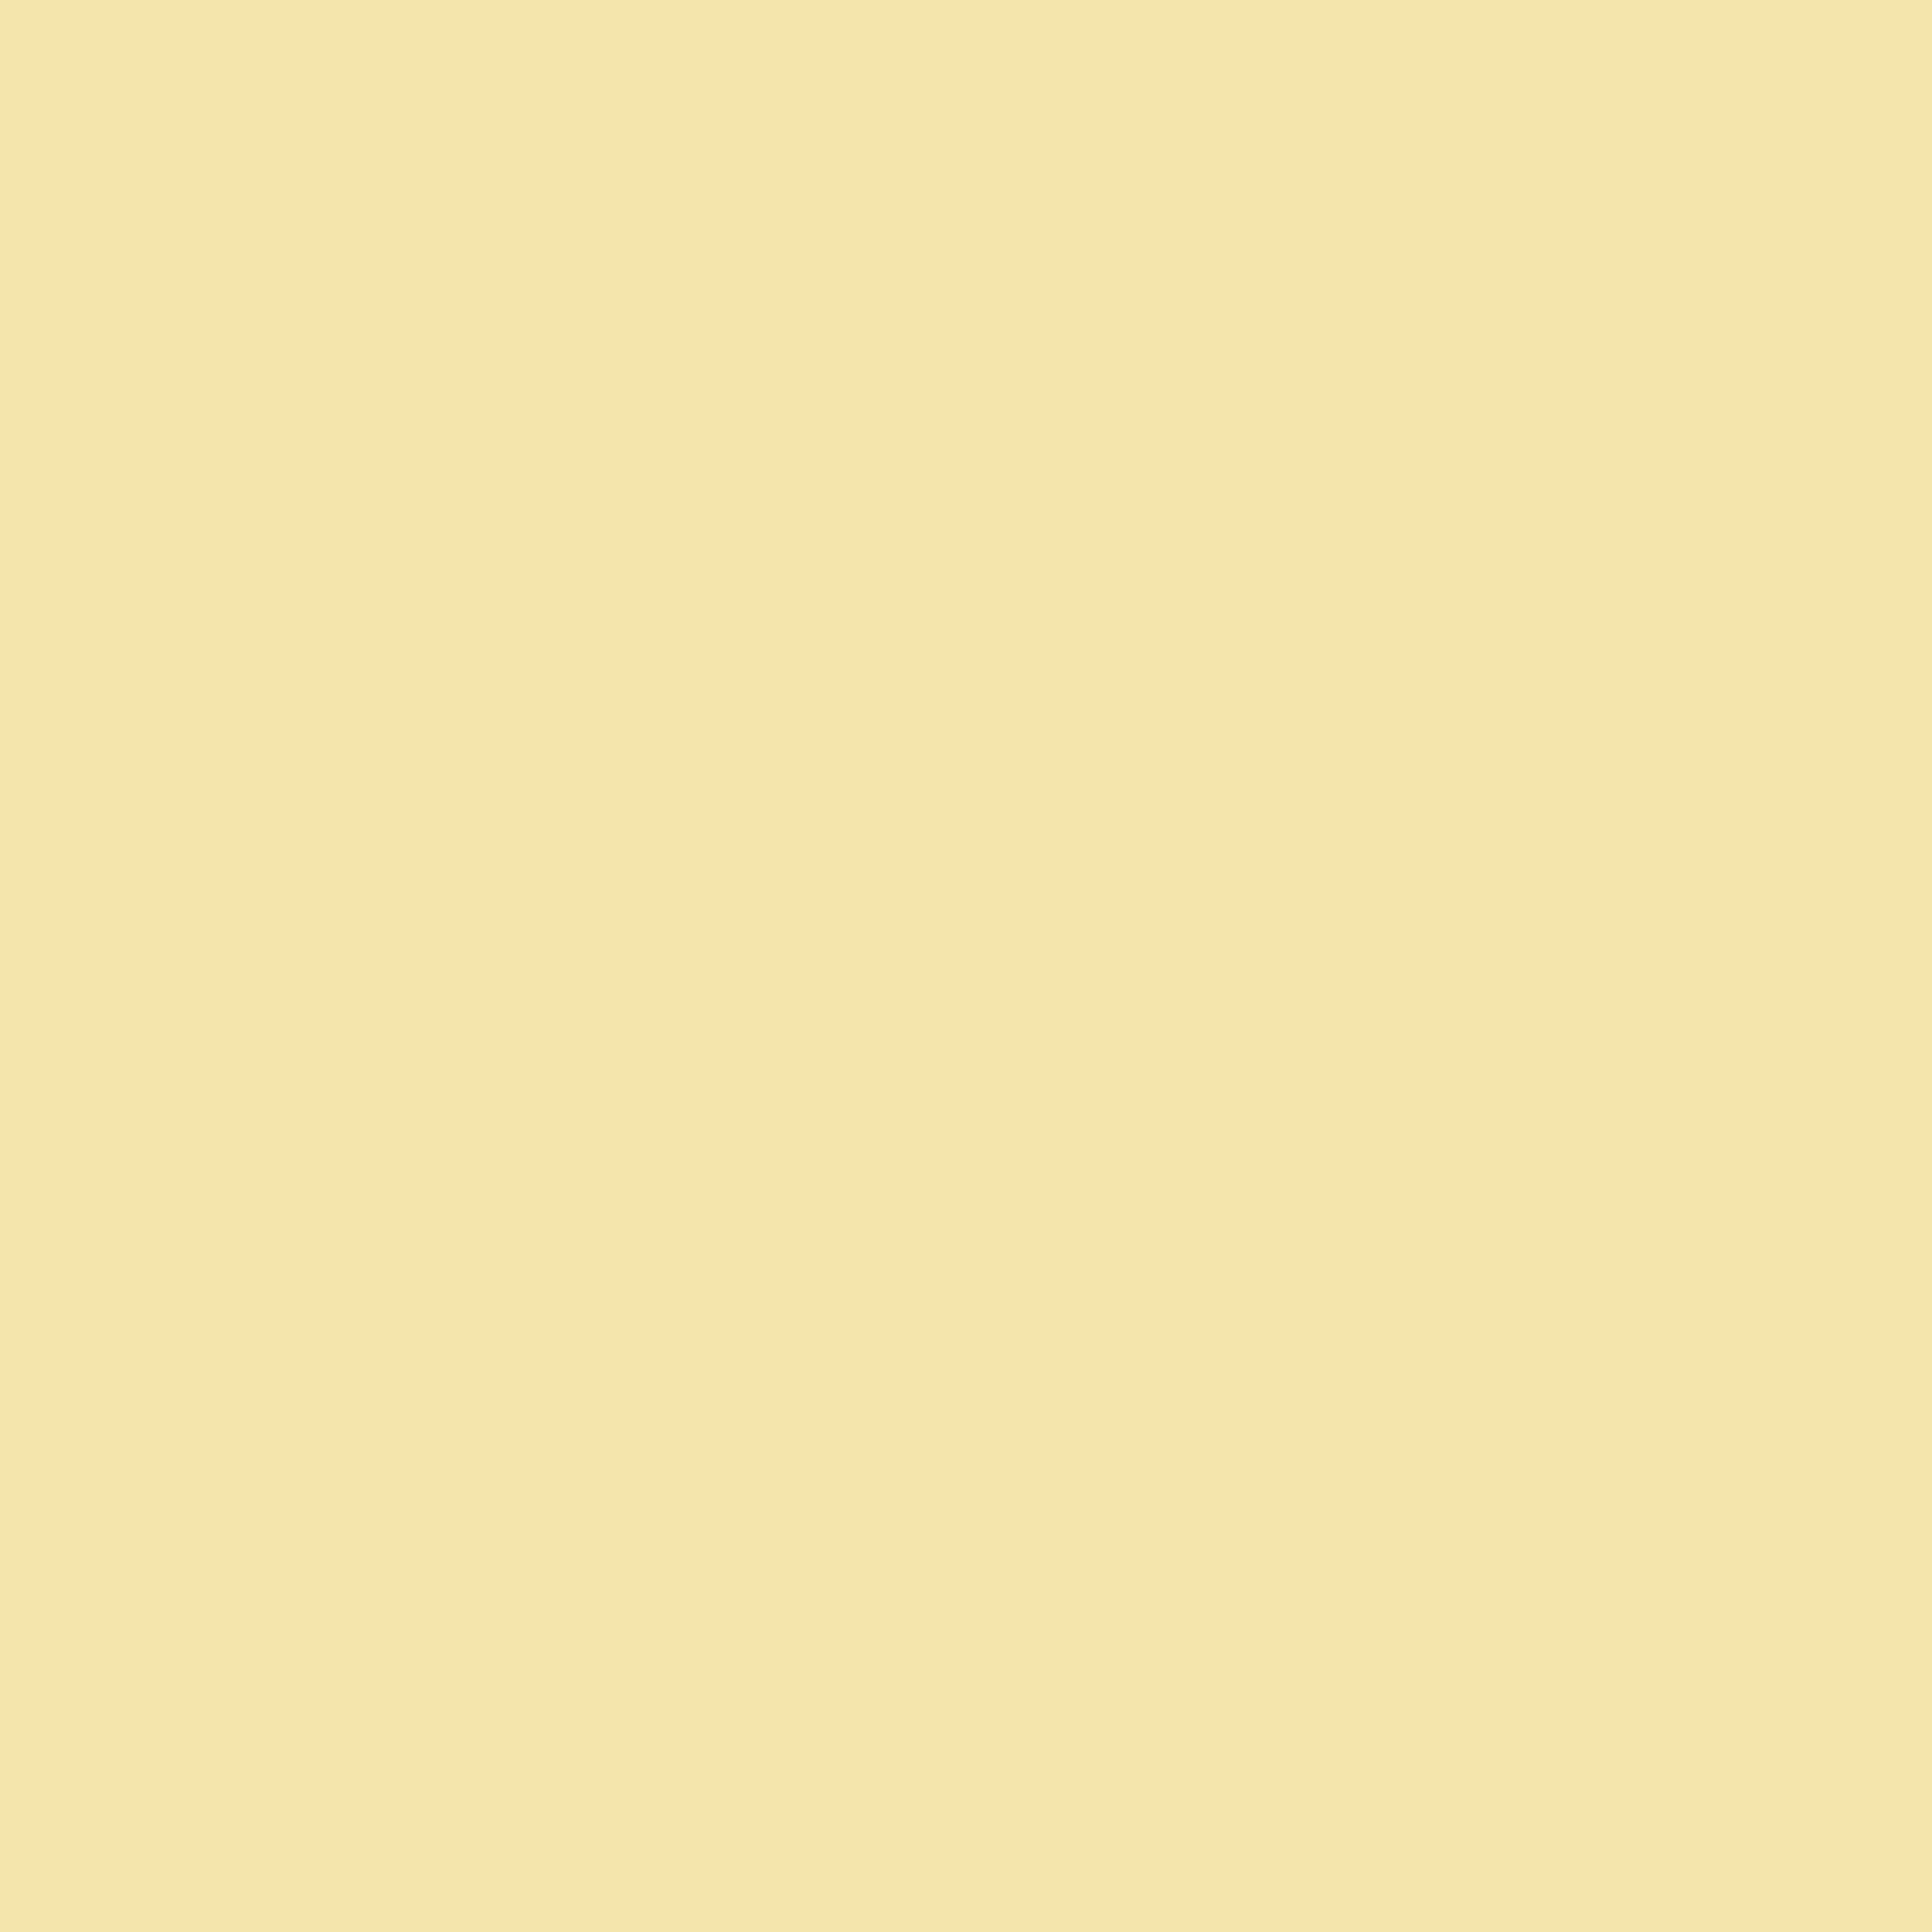 2732x2732 Medium Champagne Solid Color Background